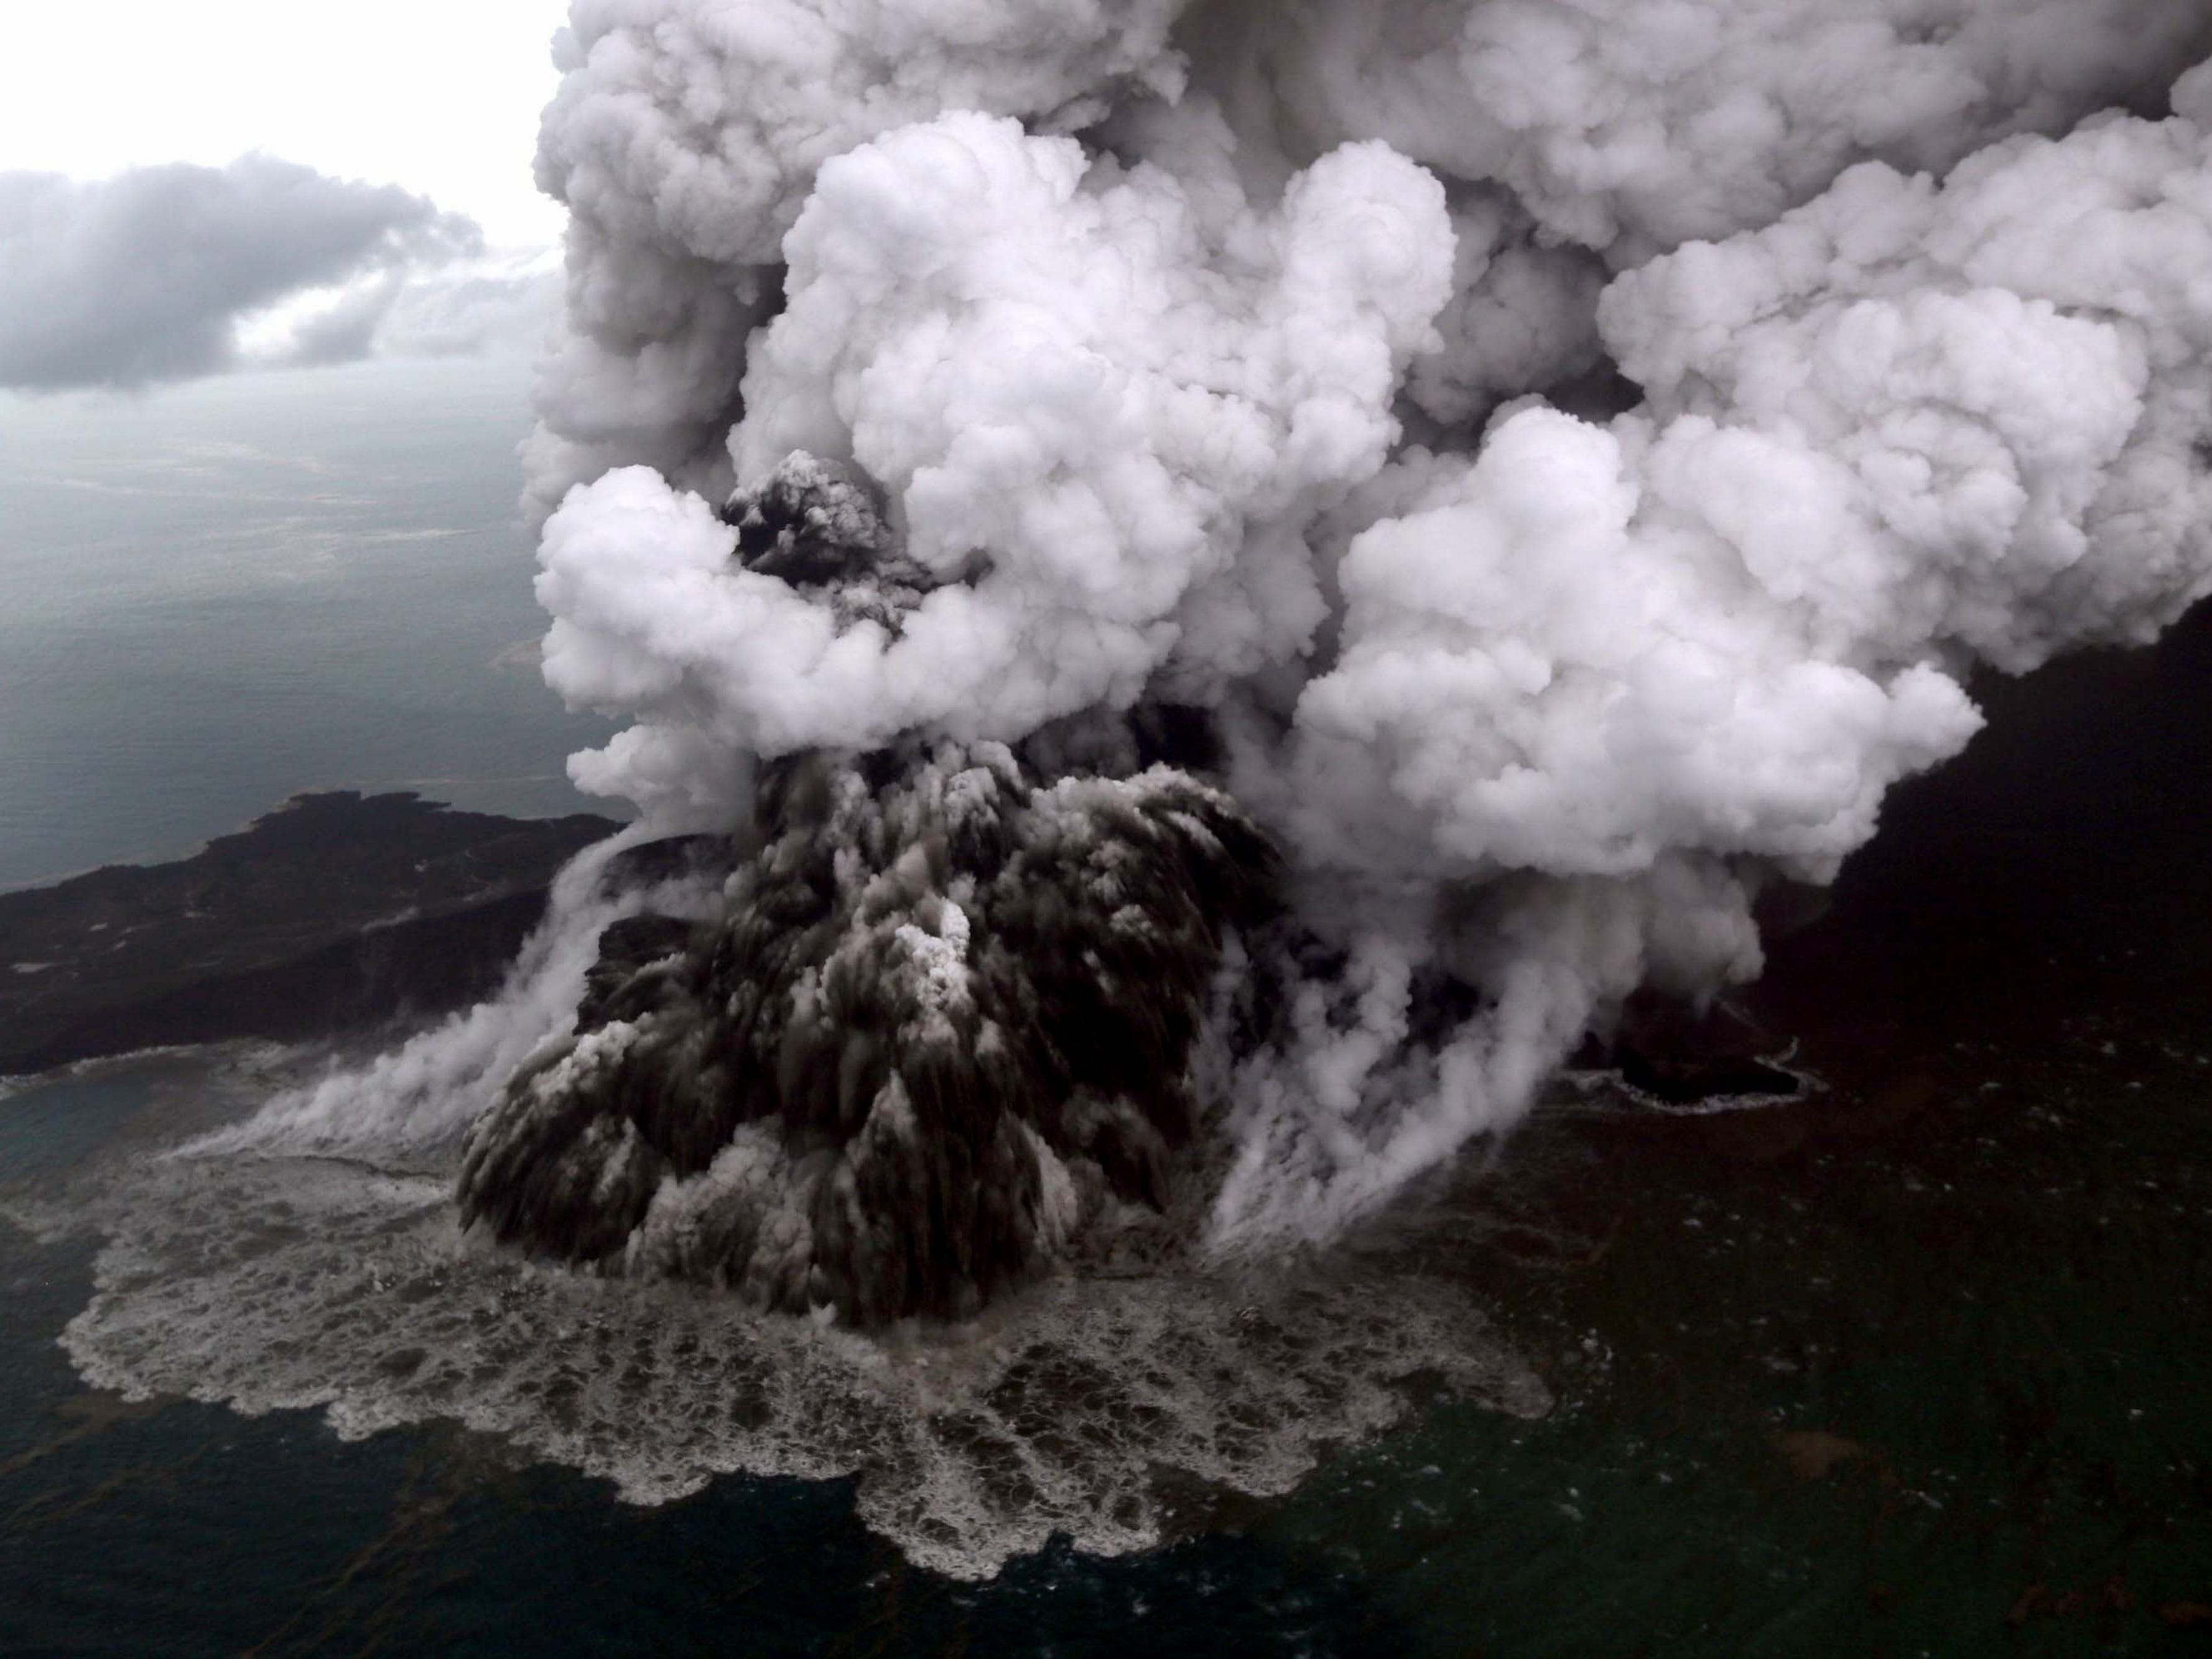 This aerial picture taken on Dec. 23, 2018 by Bisnis Indonesia shows the Anak (Child) Krakatoa volcano erupting in the Sunda Straits off the coast of southern Sumatra and the western tip of Java.  The death toll from the Dec. 22 volcano-triggered tsunami in Indonesia has risen to 281, with more than 1,000 people injured, the national disaster agency said on Dec. 24, as the desperate search for survivors ramped up.